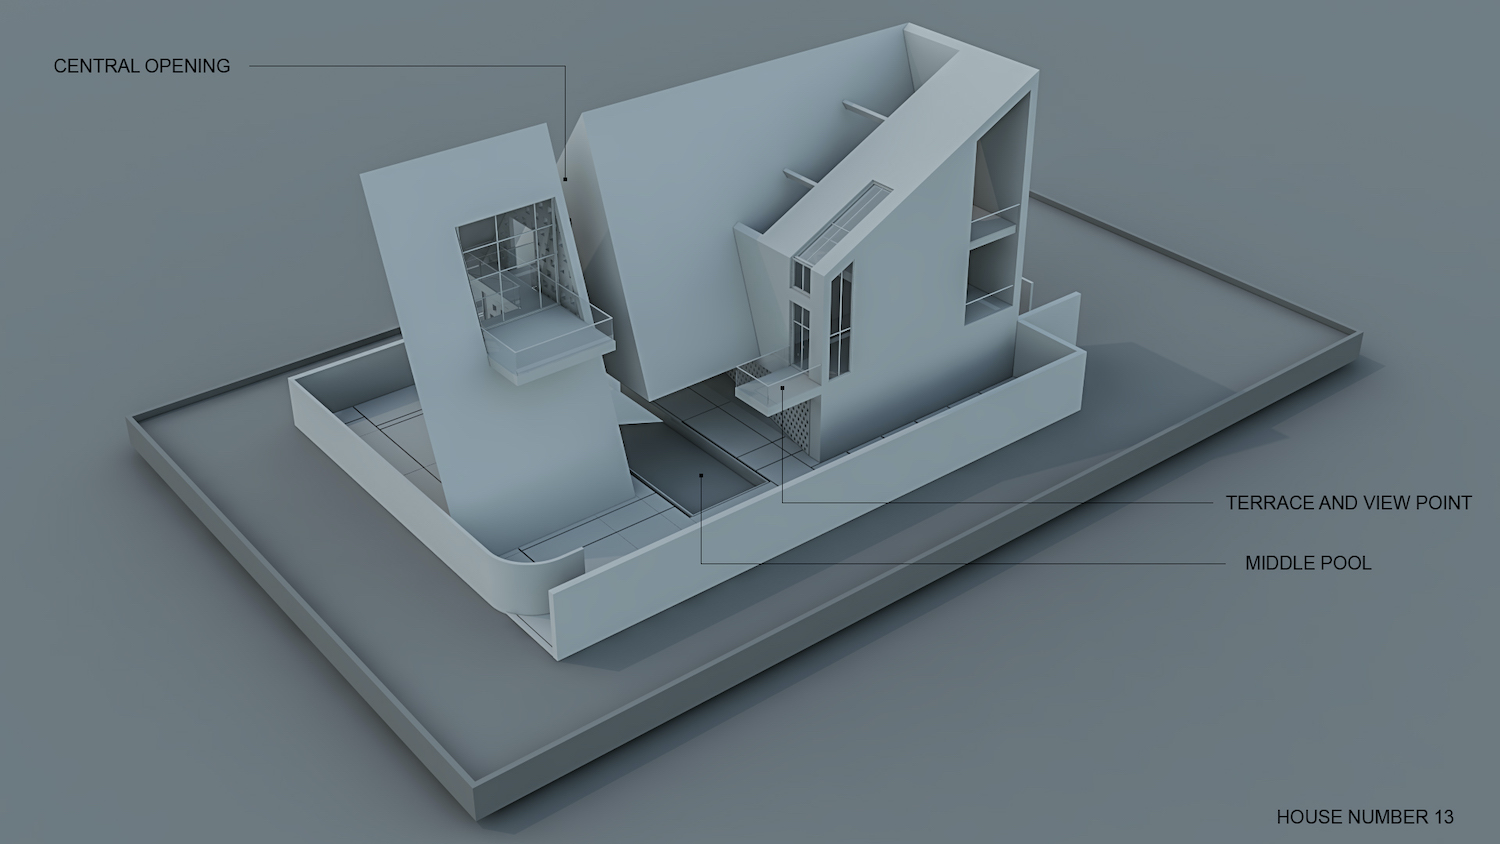 architectural drawing diagram to show the space and function of the house